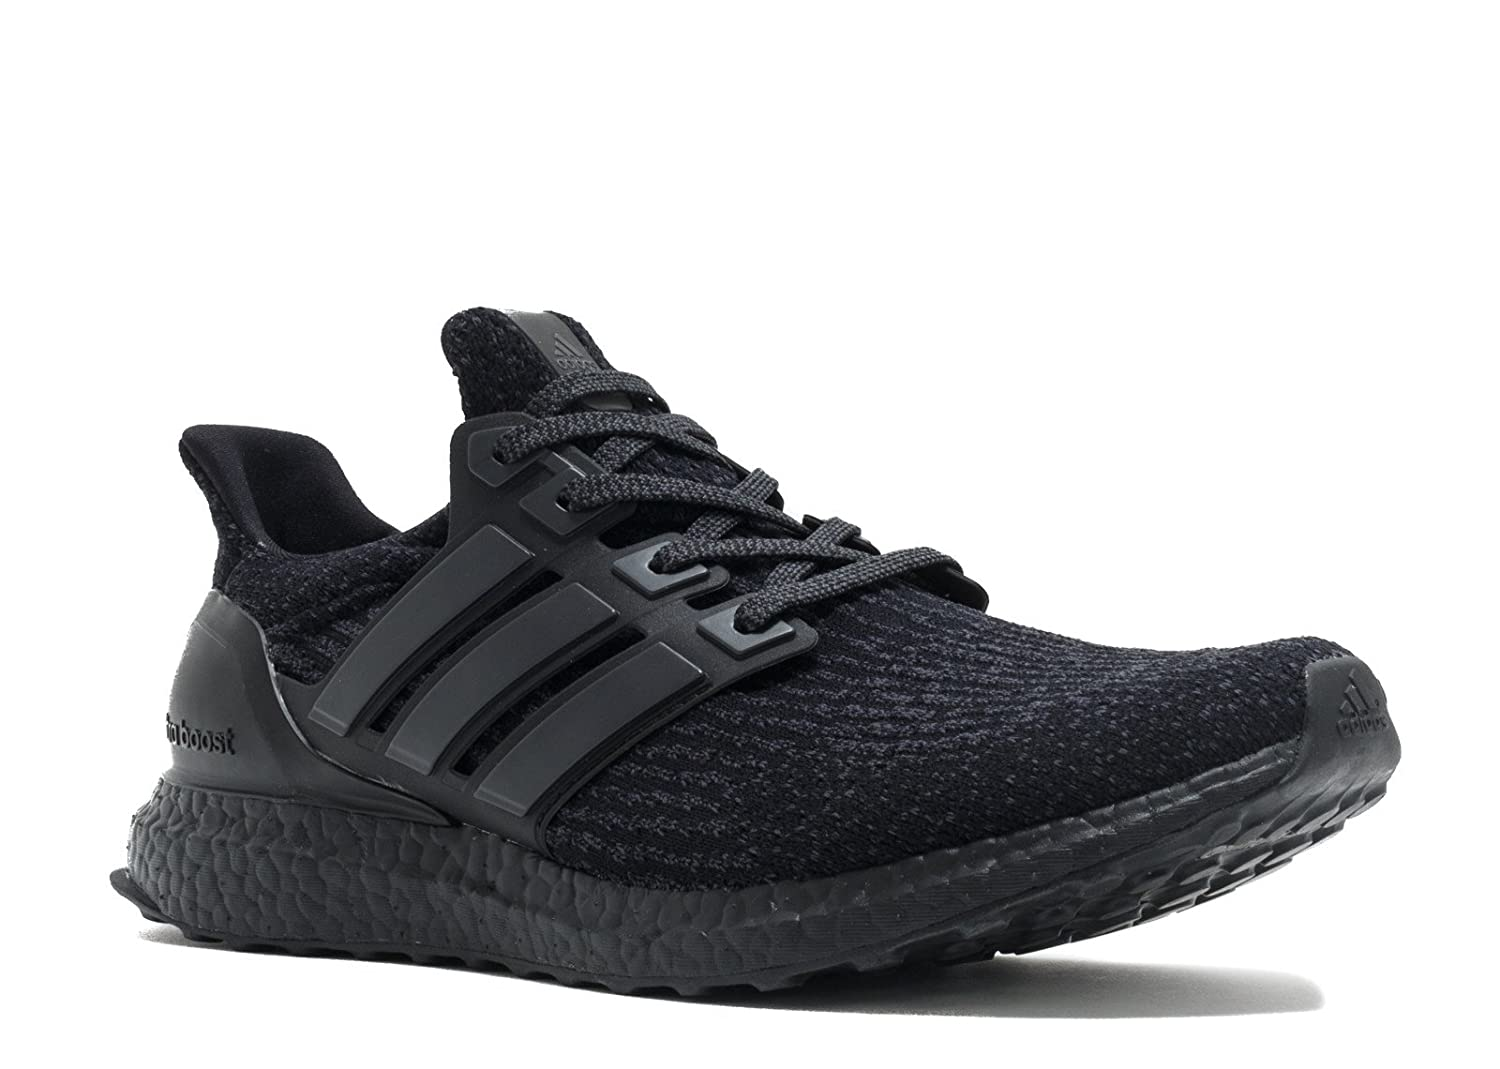 adidas Performance Men's Ultra Boost M Running Shoe B01MYNDM8M 10.5 D(M) US|Black/Black/Dark Shale